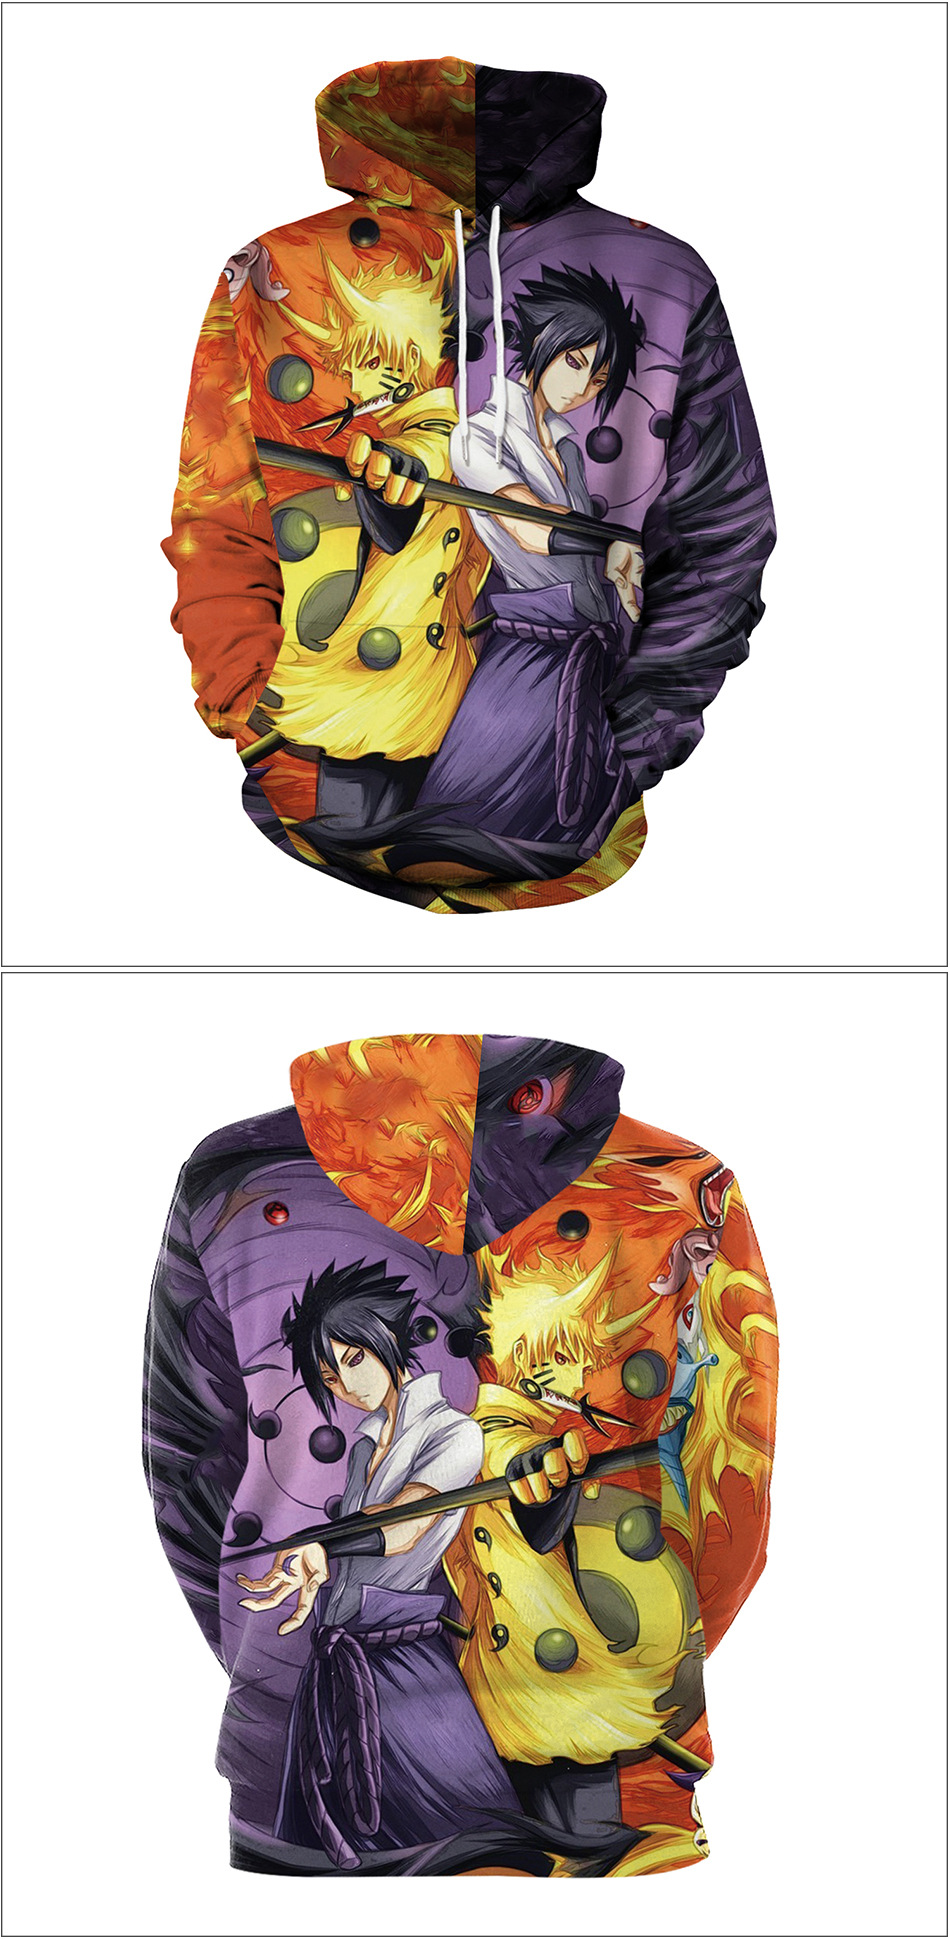 Anime Naruto Sasuke Cosplay Costumes Jacket Sweater Casual Coat Clothes Hoodie Autumn Fashion Women Halloween Costumes Adult Men